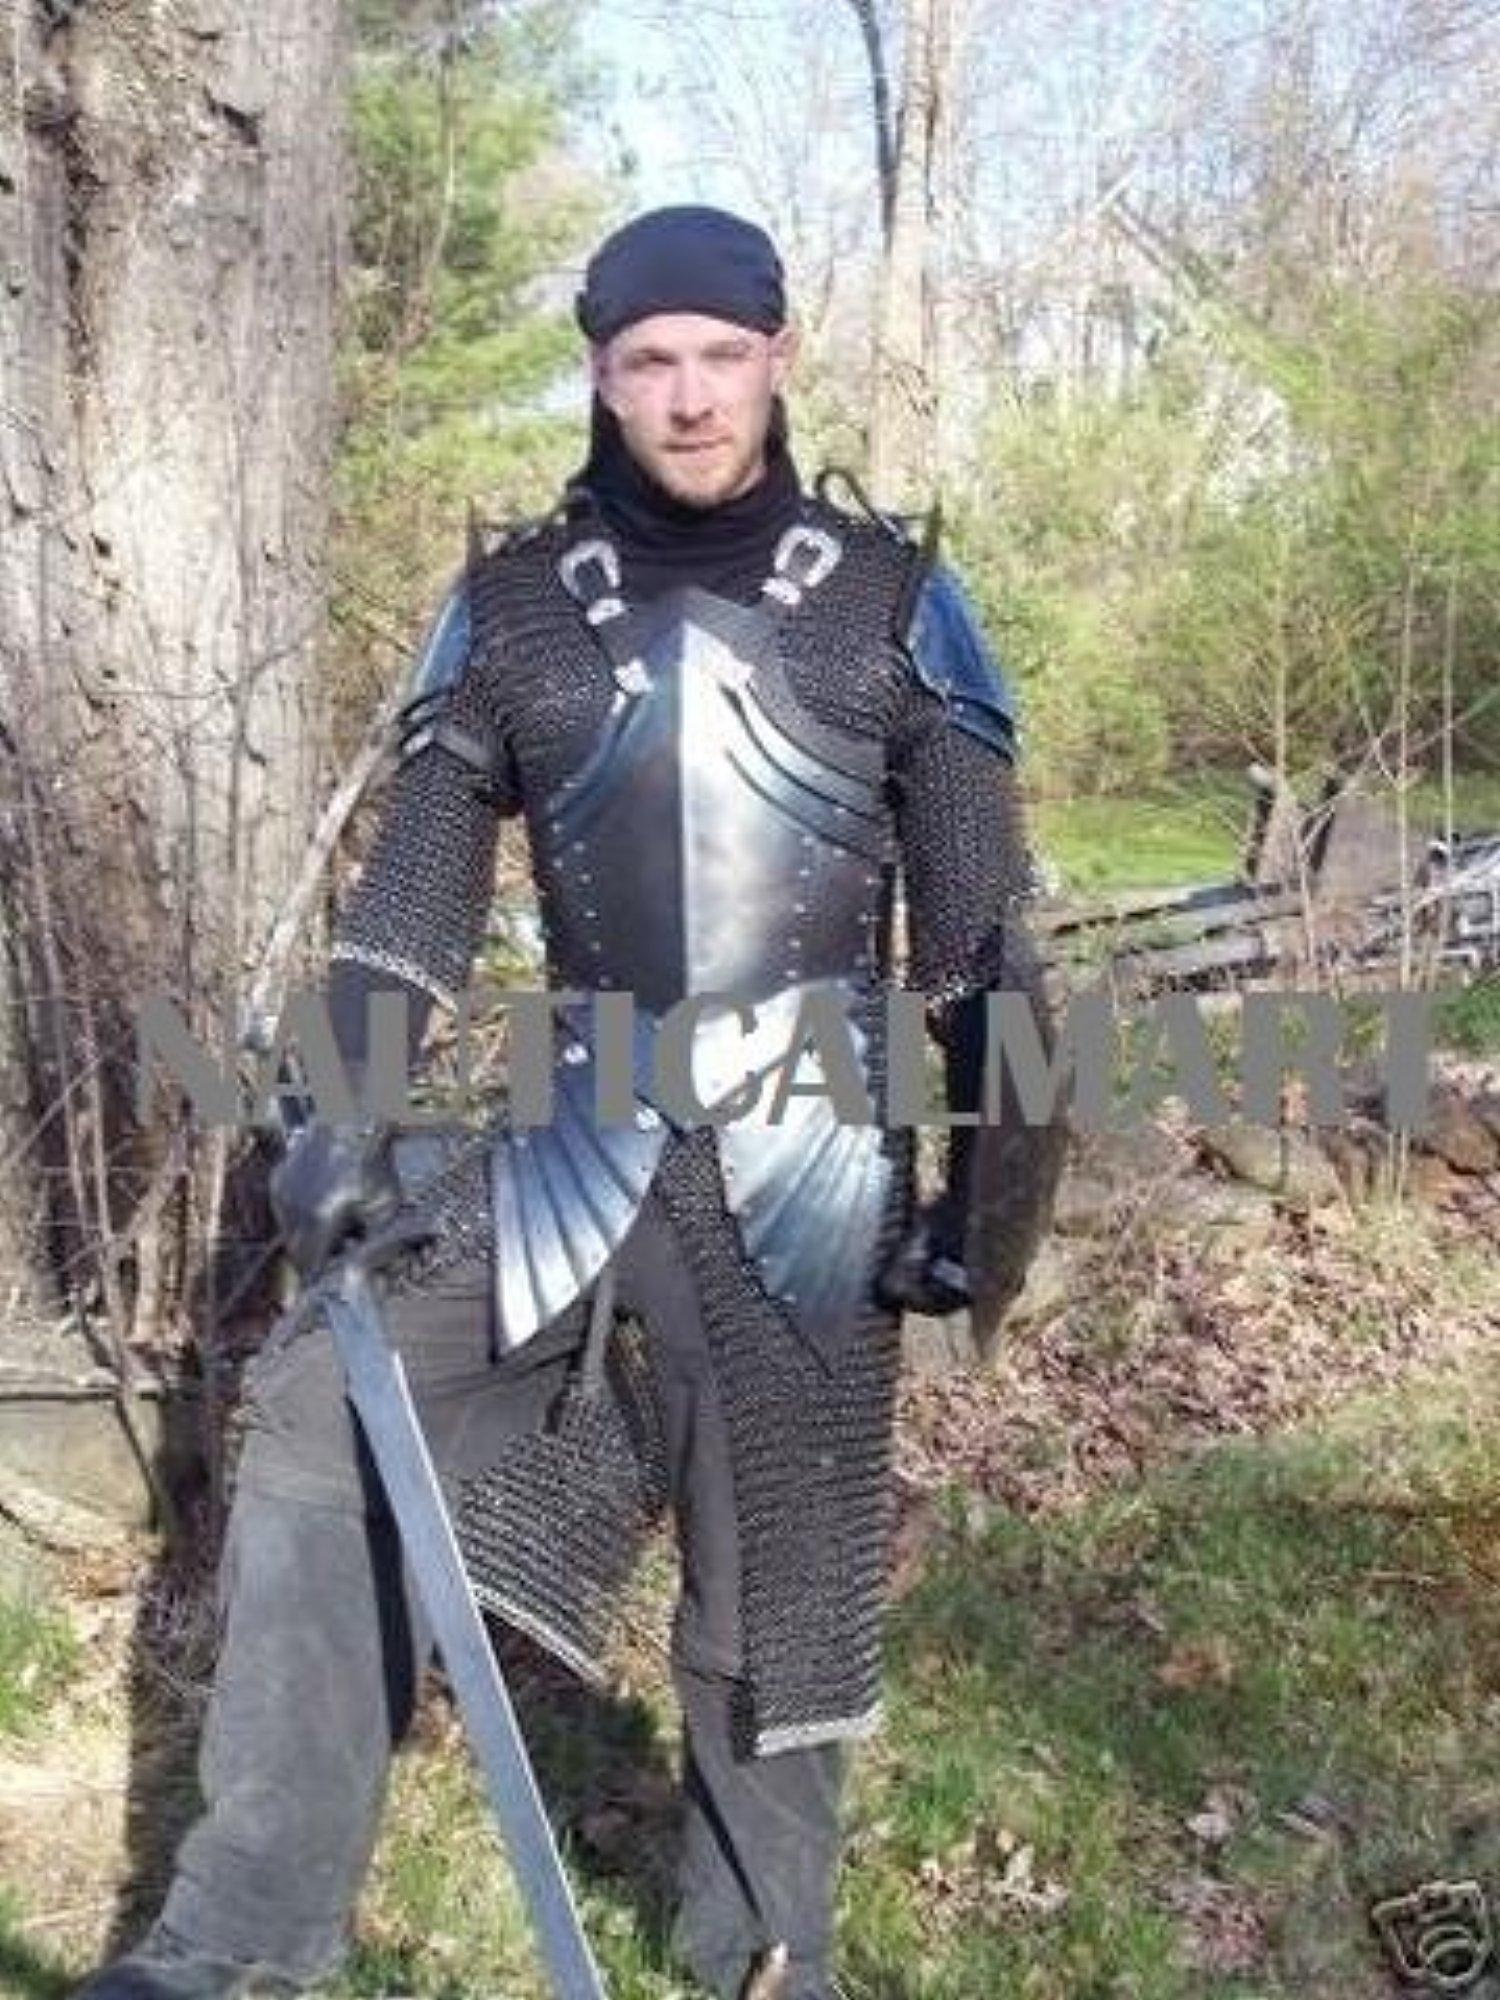 online store  medieval knight half plate armor   shield